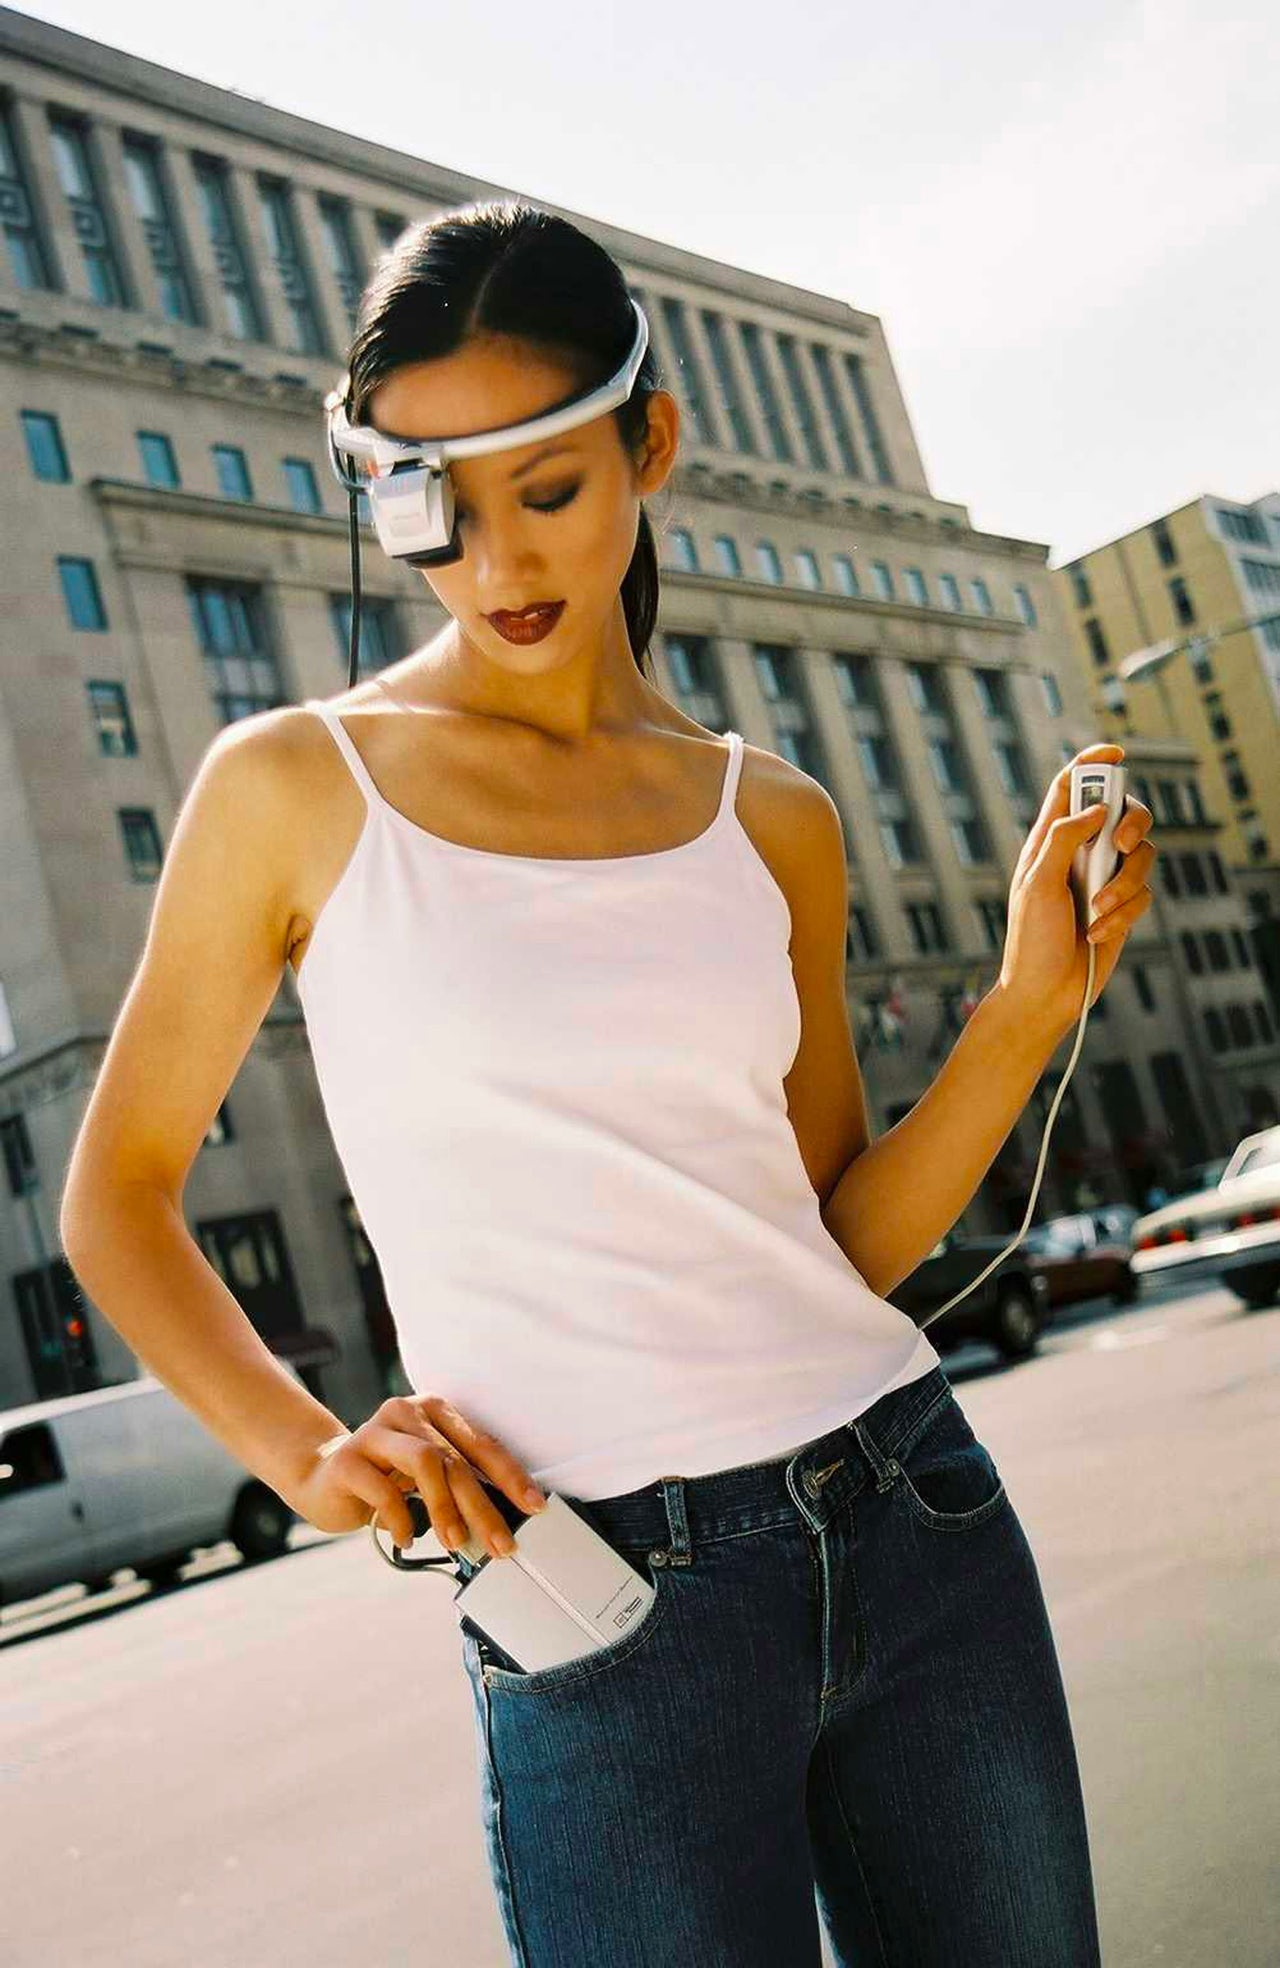 A model wearing a 2002 version of the Mobile Assistant, the POMA